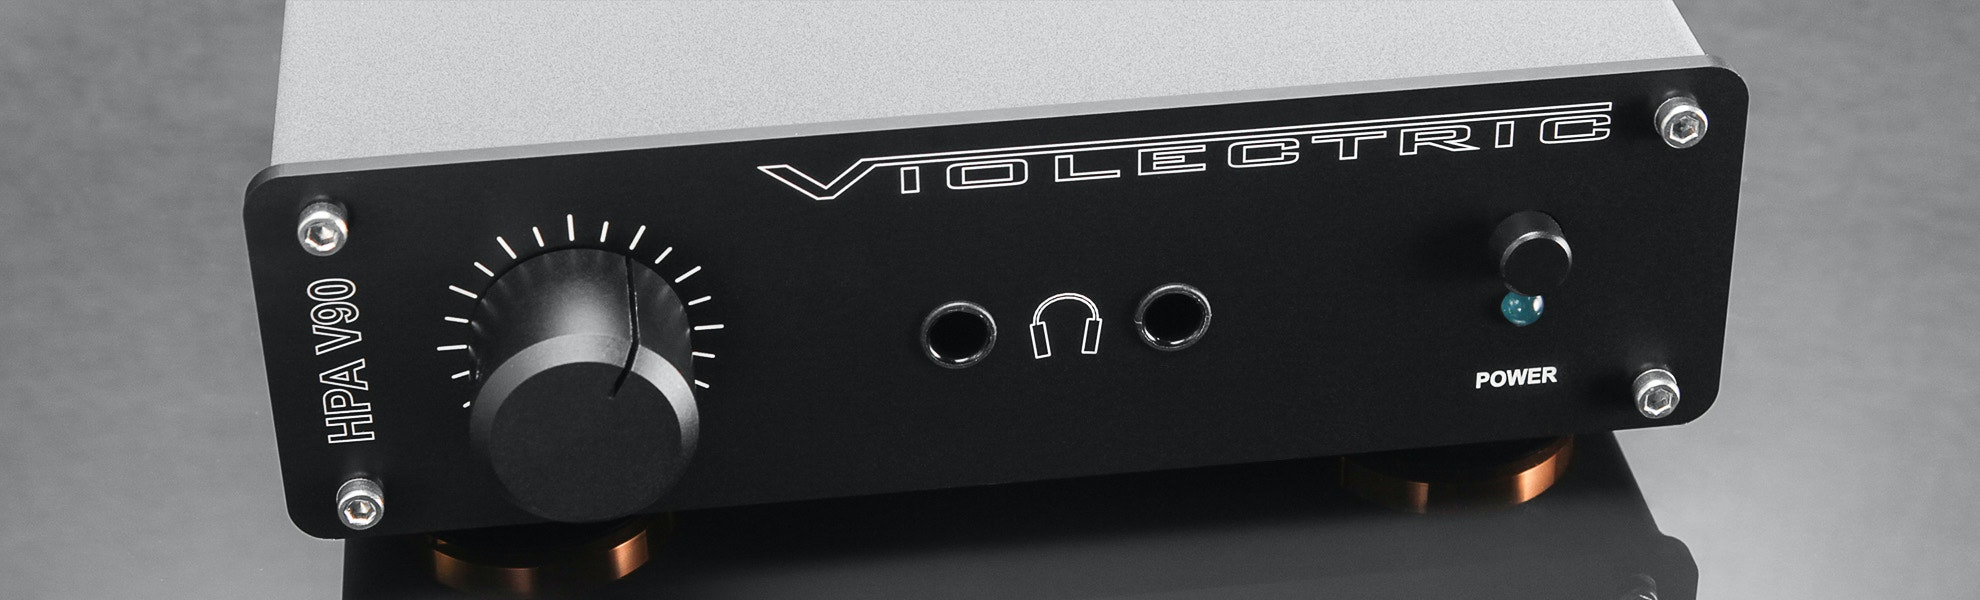 Violectric Audio HPA V90 Headphone Amplifier